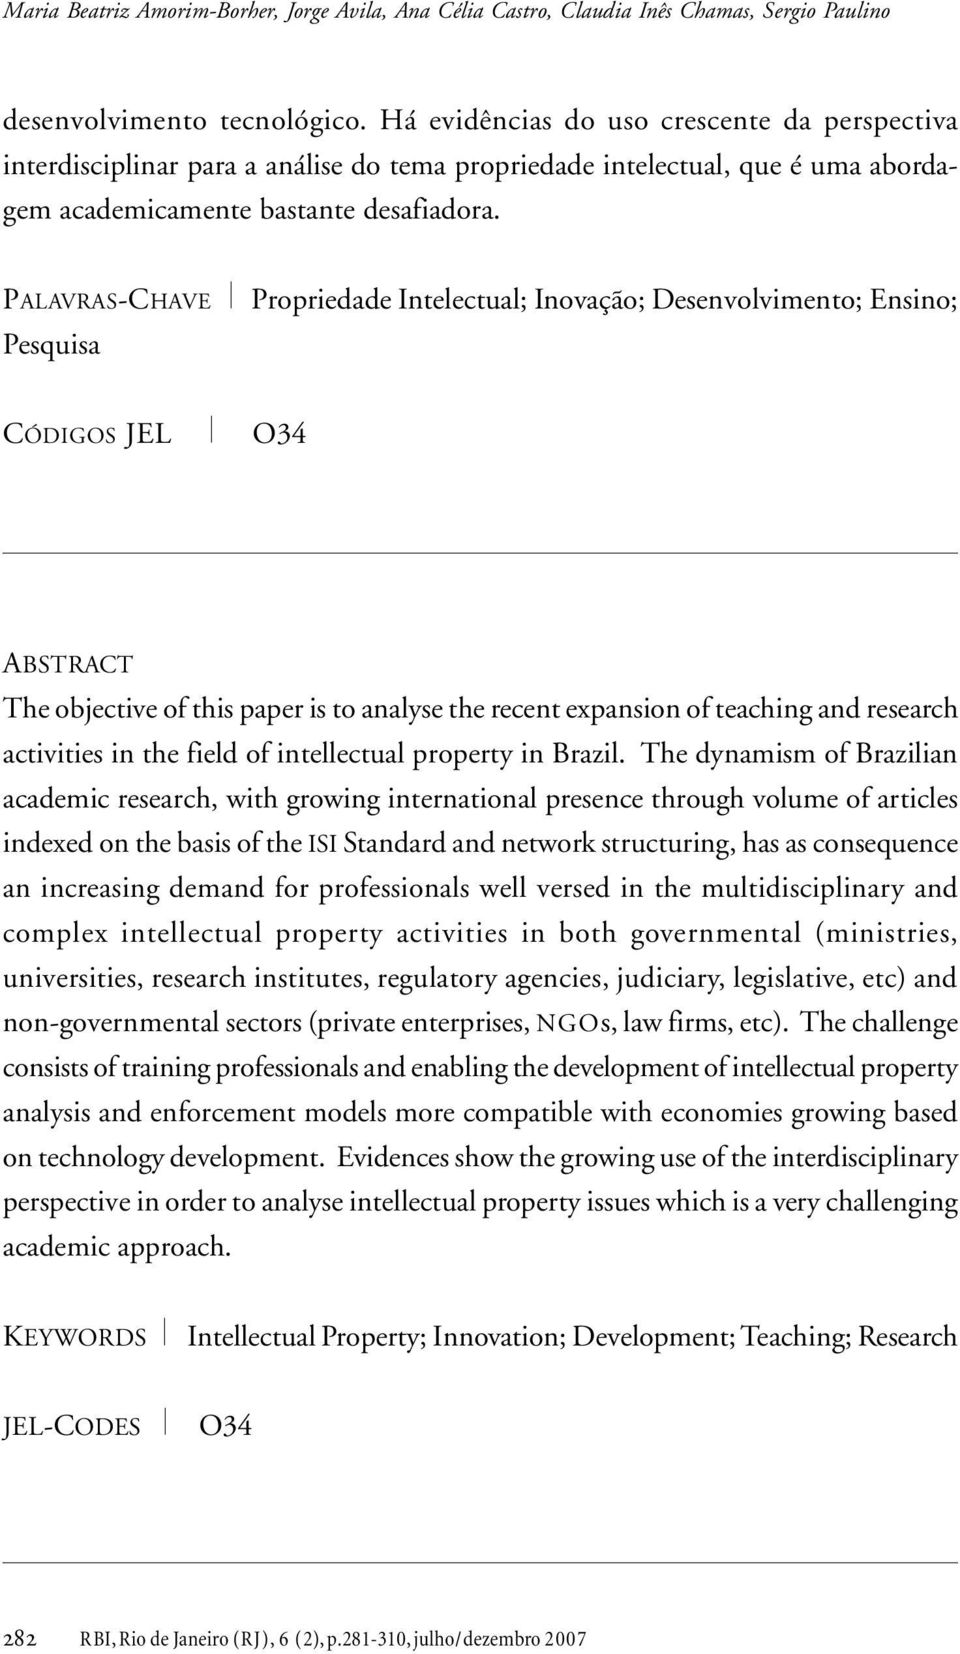 PALAVRAS-CHAVE Pesquisa Propriedade Intelectual; Inovação; Desenvolvimento; Ensino; CÓDIGOS JEL O34 ABSTRACT The objective of this paper is to analyse the recent expansion of teaching and research